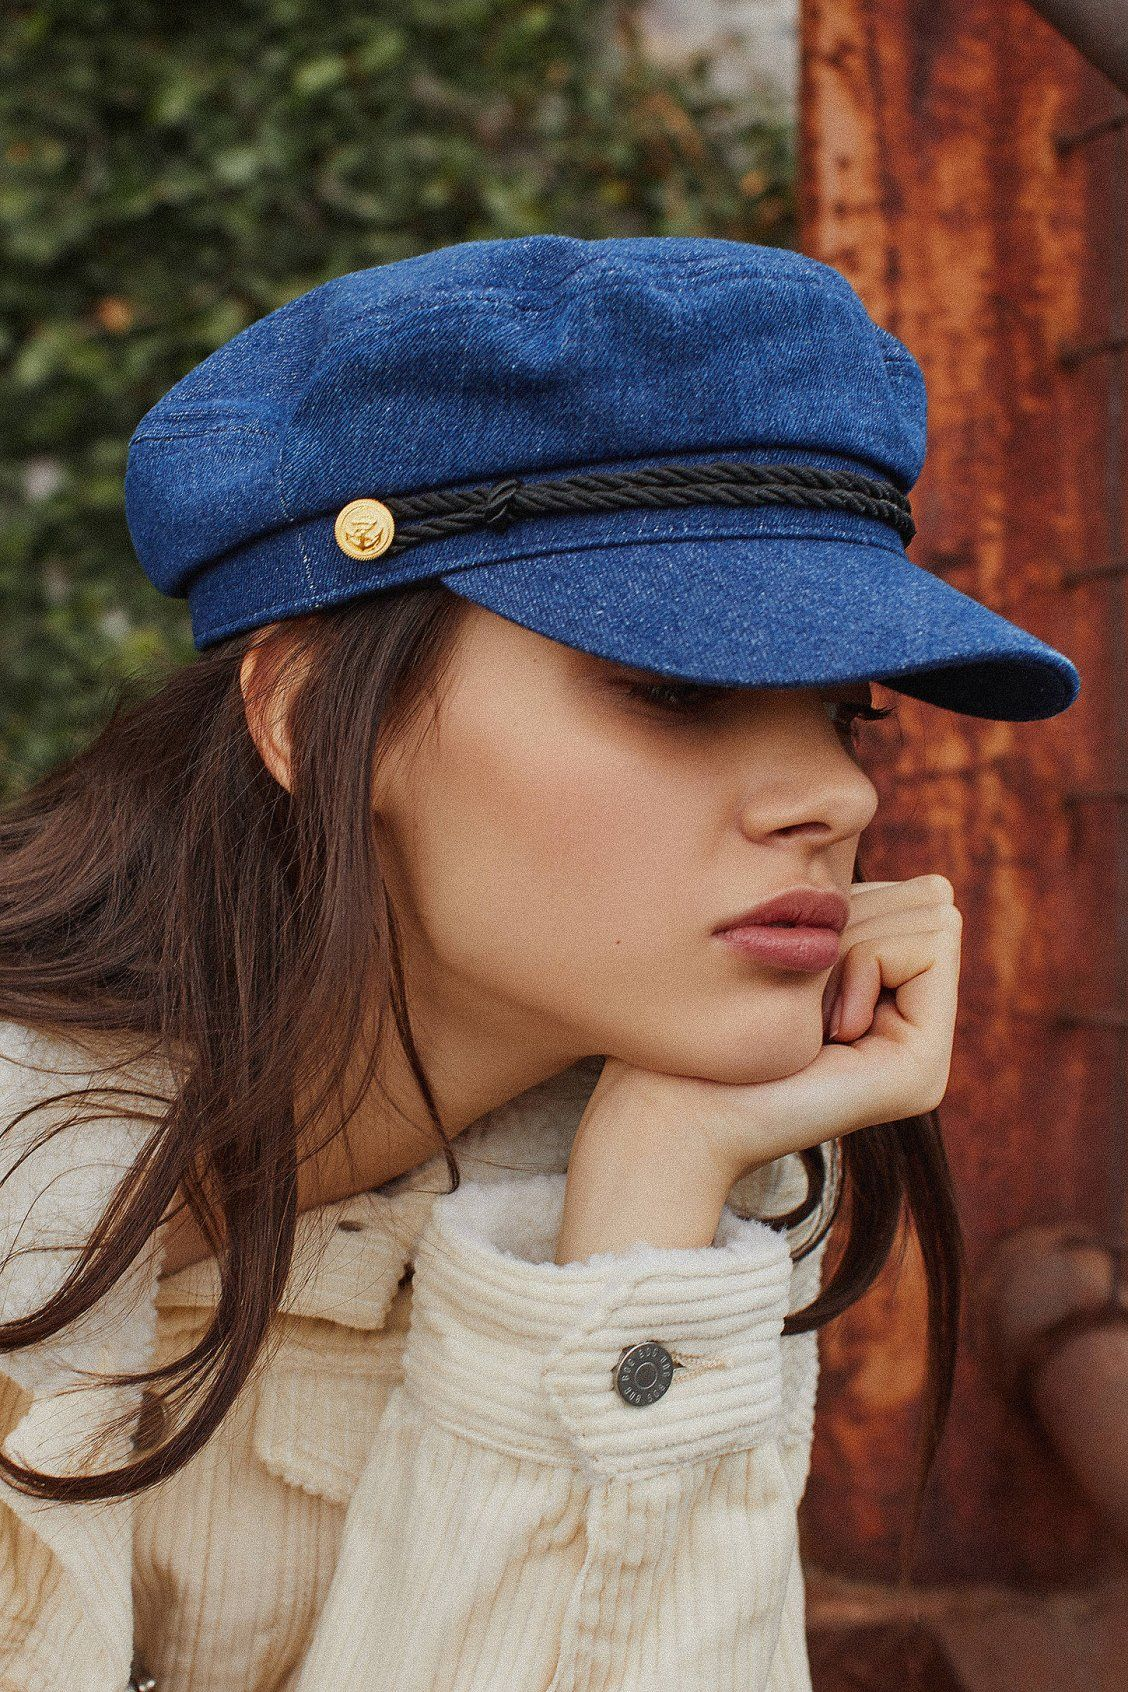 051f302e Denim Captain Hat   Accessorize   Fashion, Hats, Outfits with hats